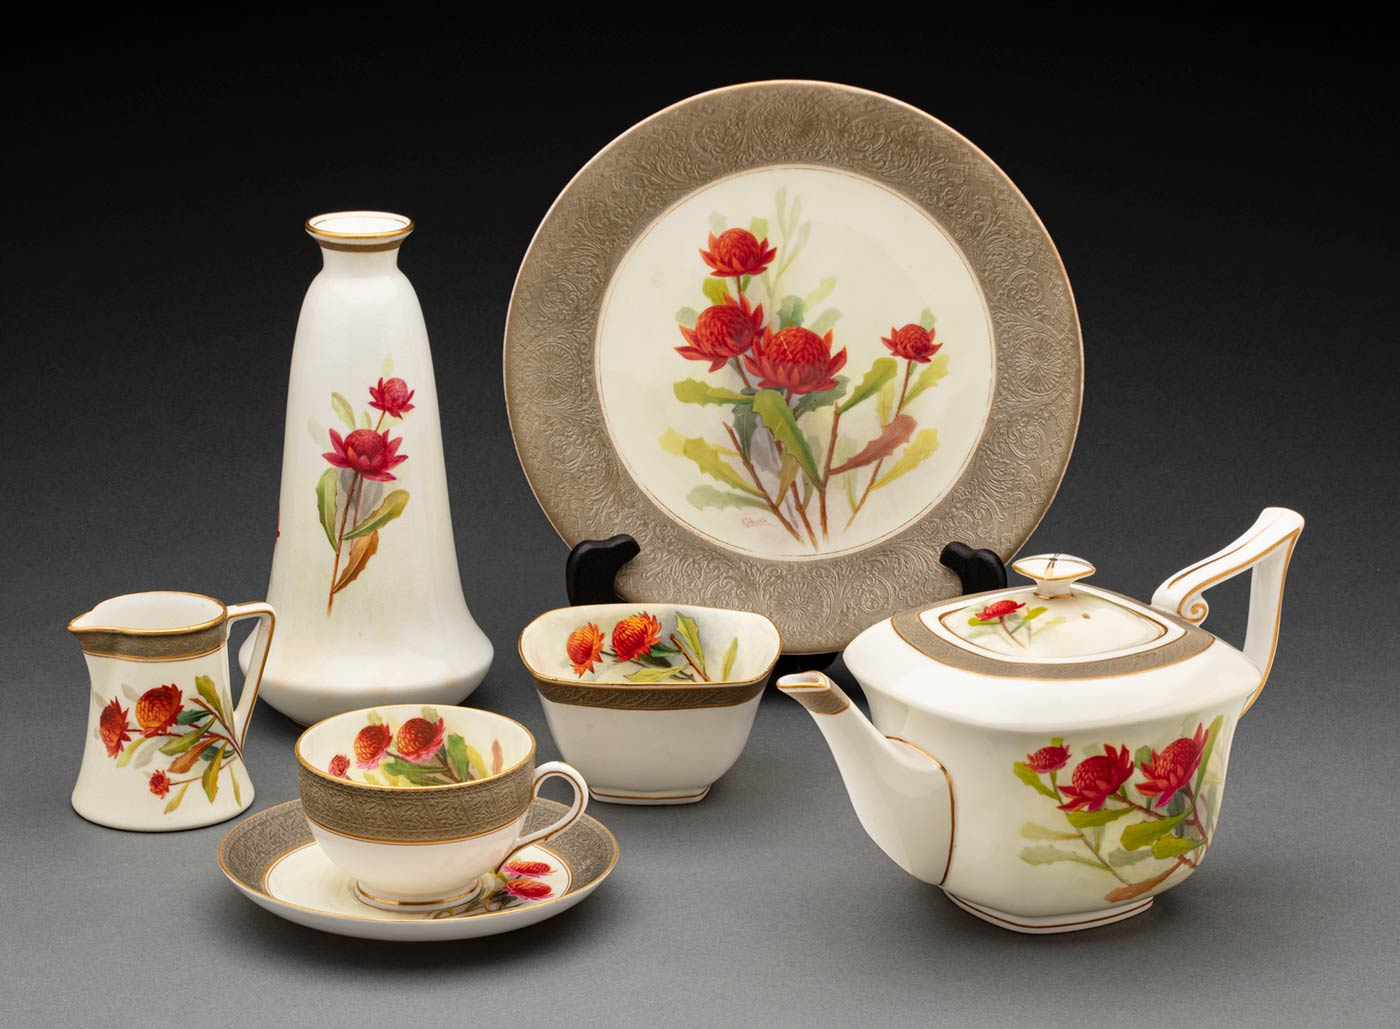 Set of ceramic tableware with detailed embellishments and hand-painted waratahs. - click to view larger image